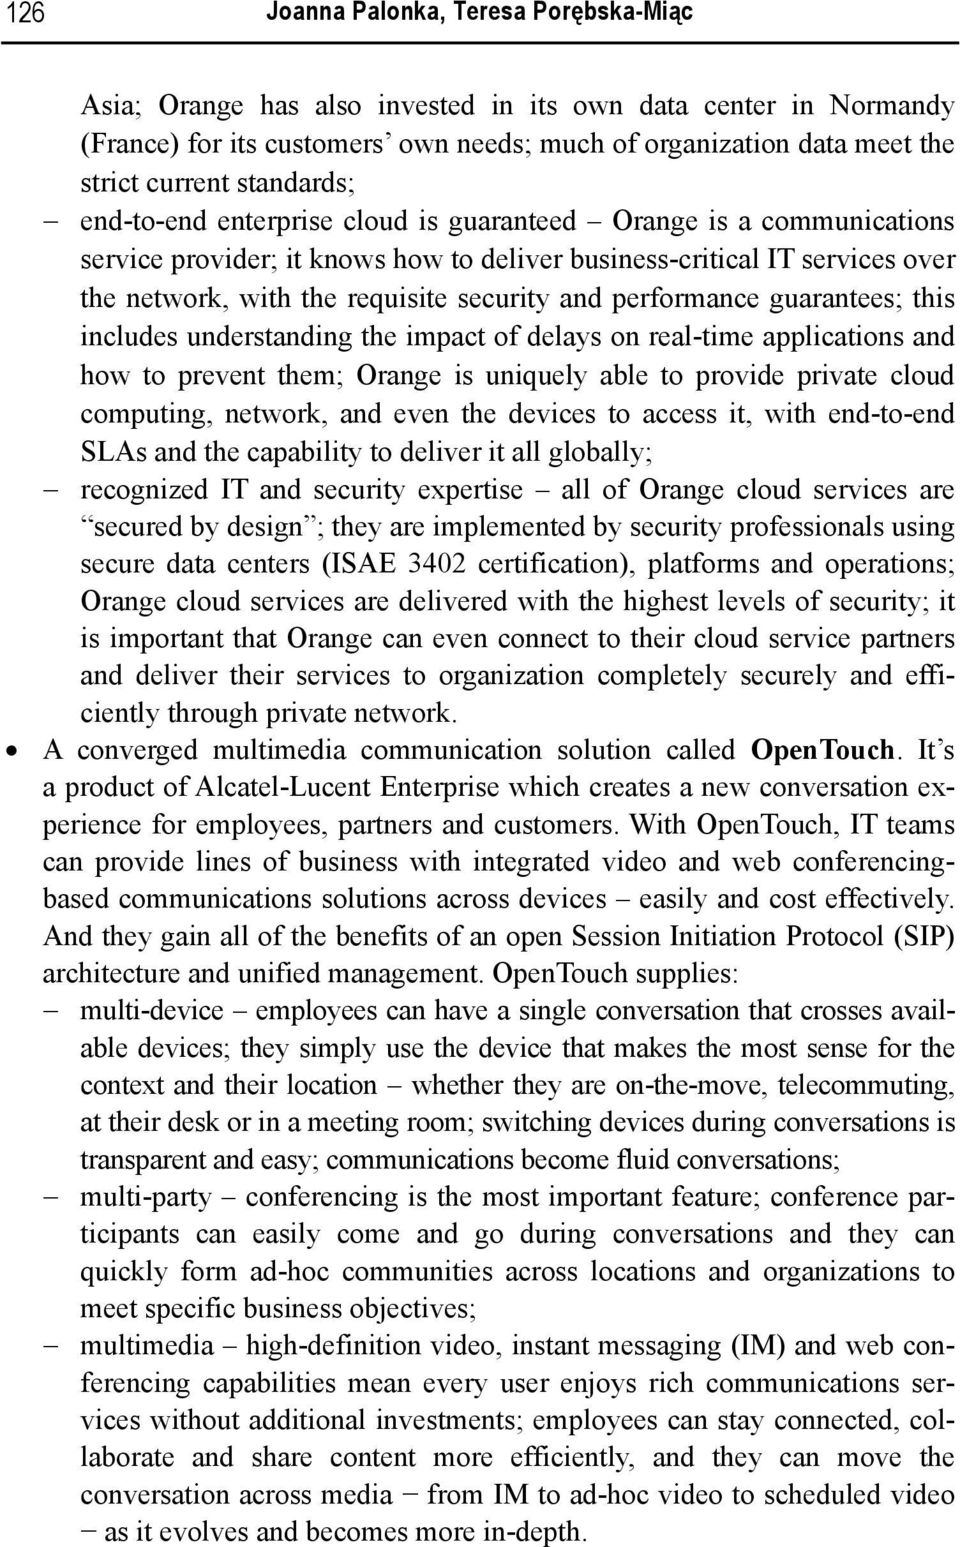 guarantees; this includes understing impact delays on real-time applications how to prevent m; Orange is uniquely able to provide private cloud computing, network, even devices to access it, with